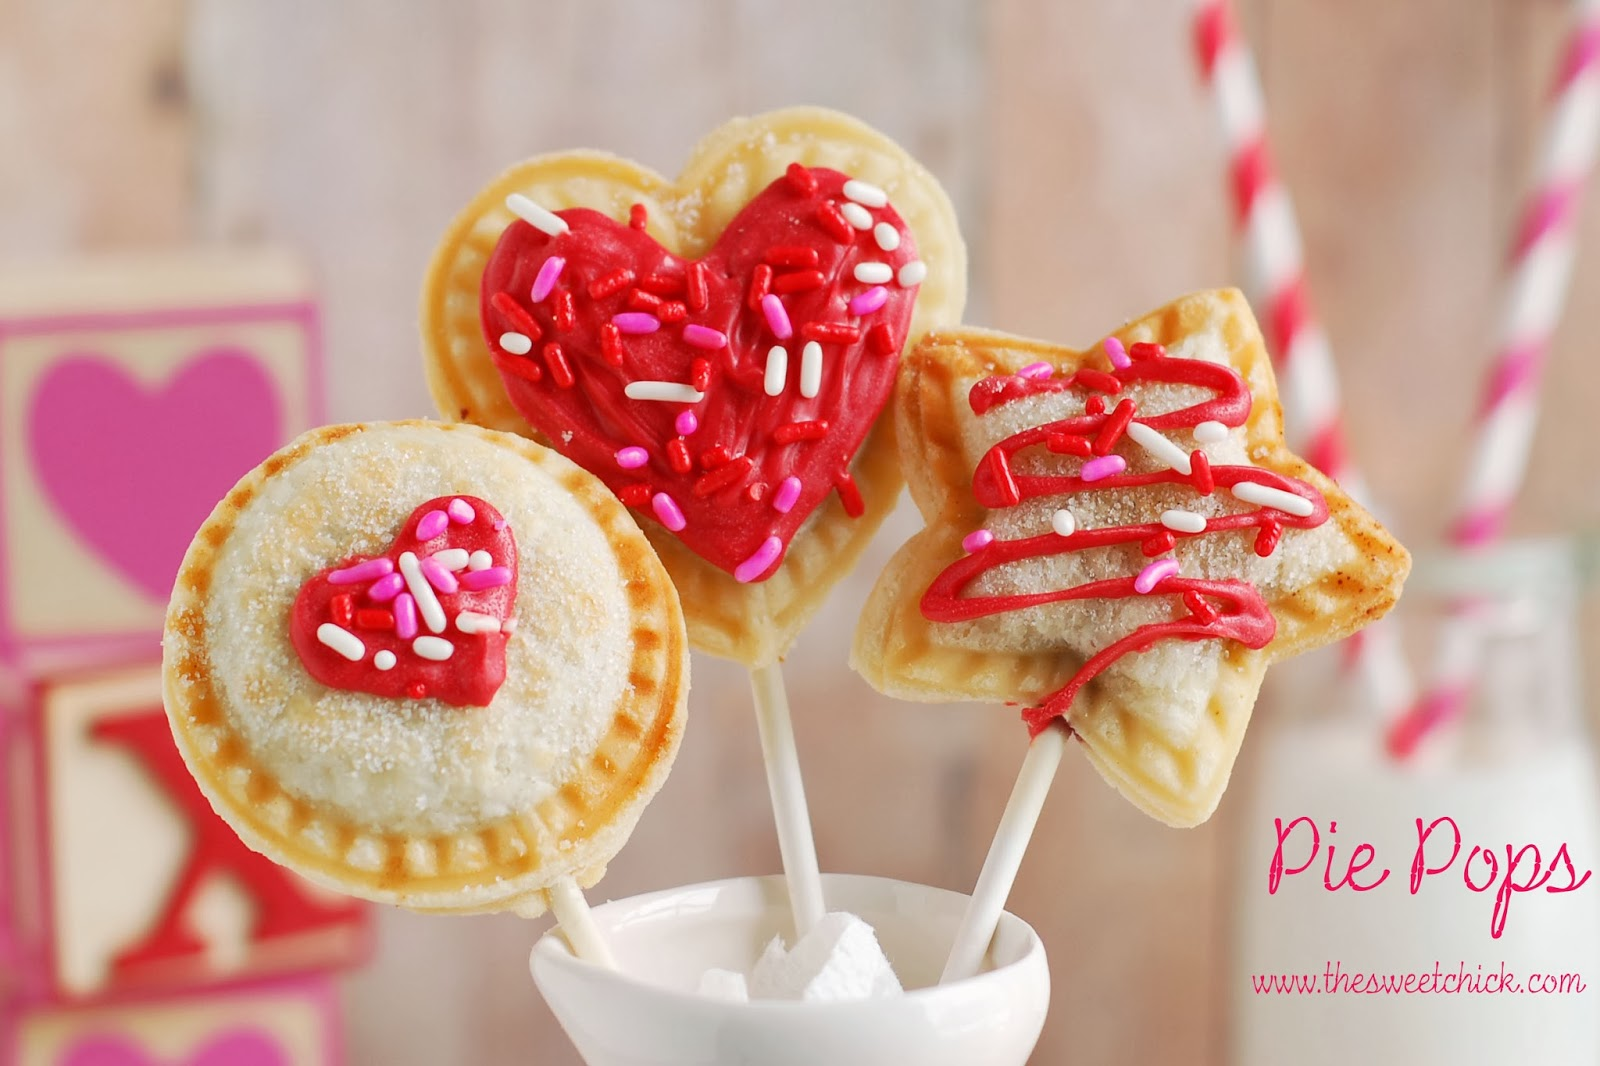 Pie Pops by The Sweet Chick